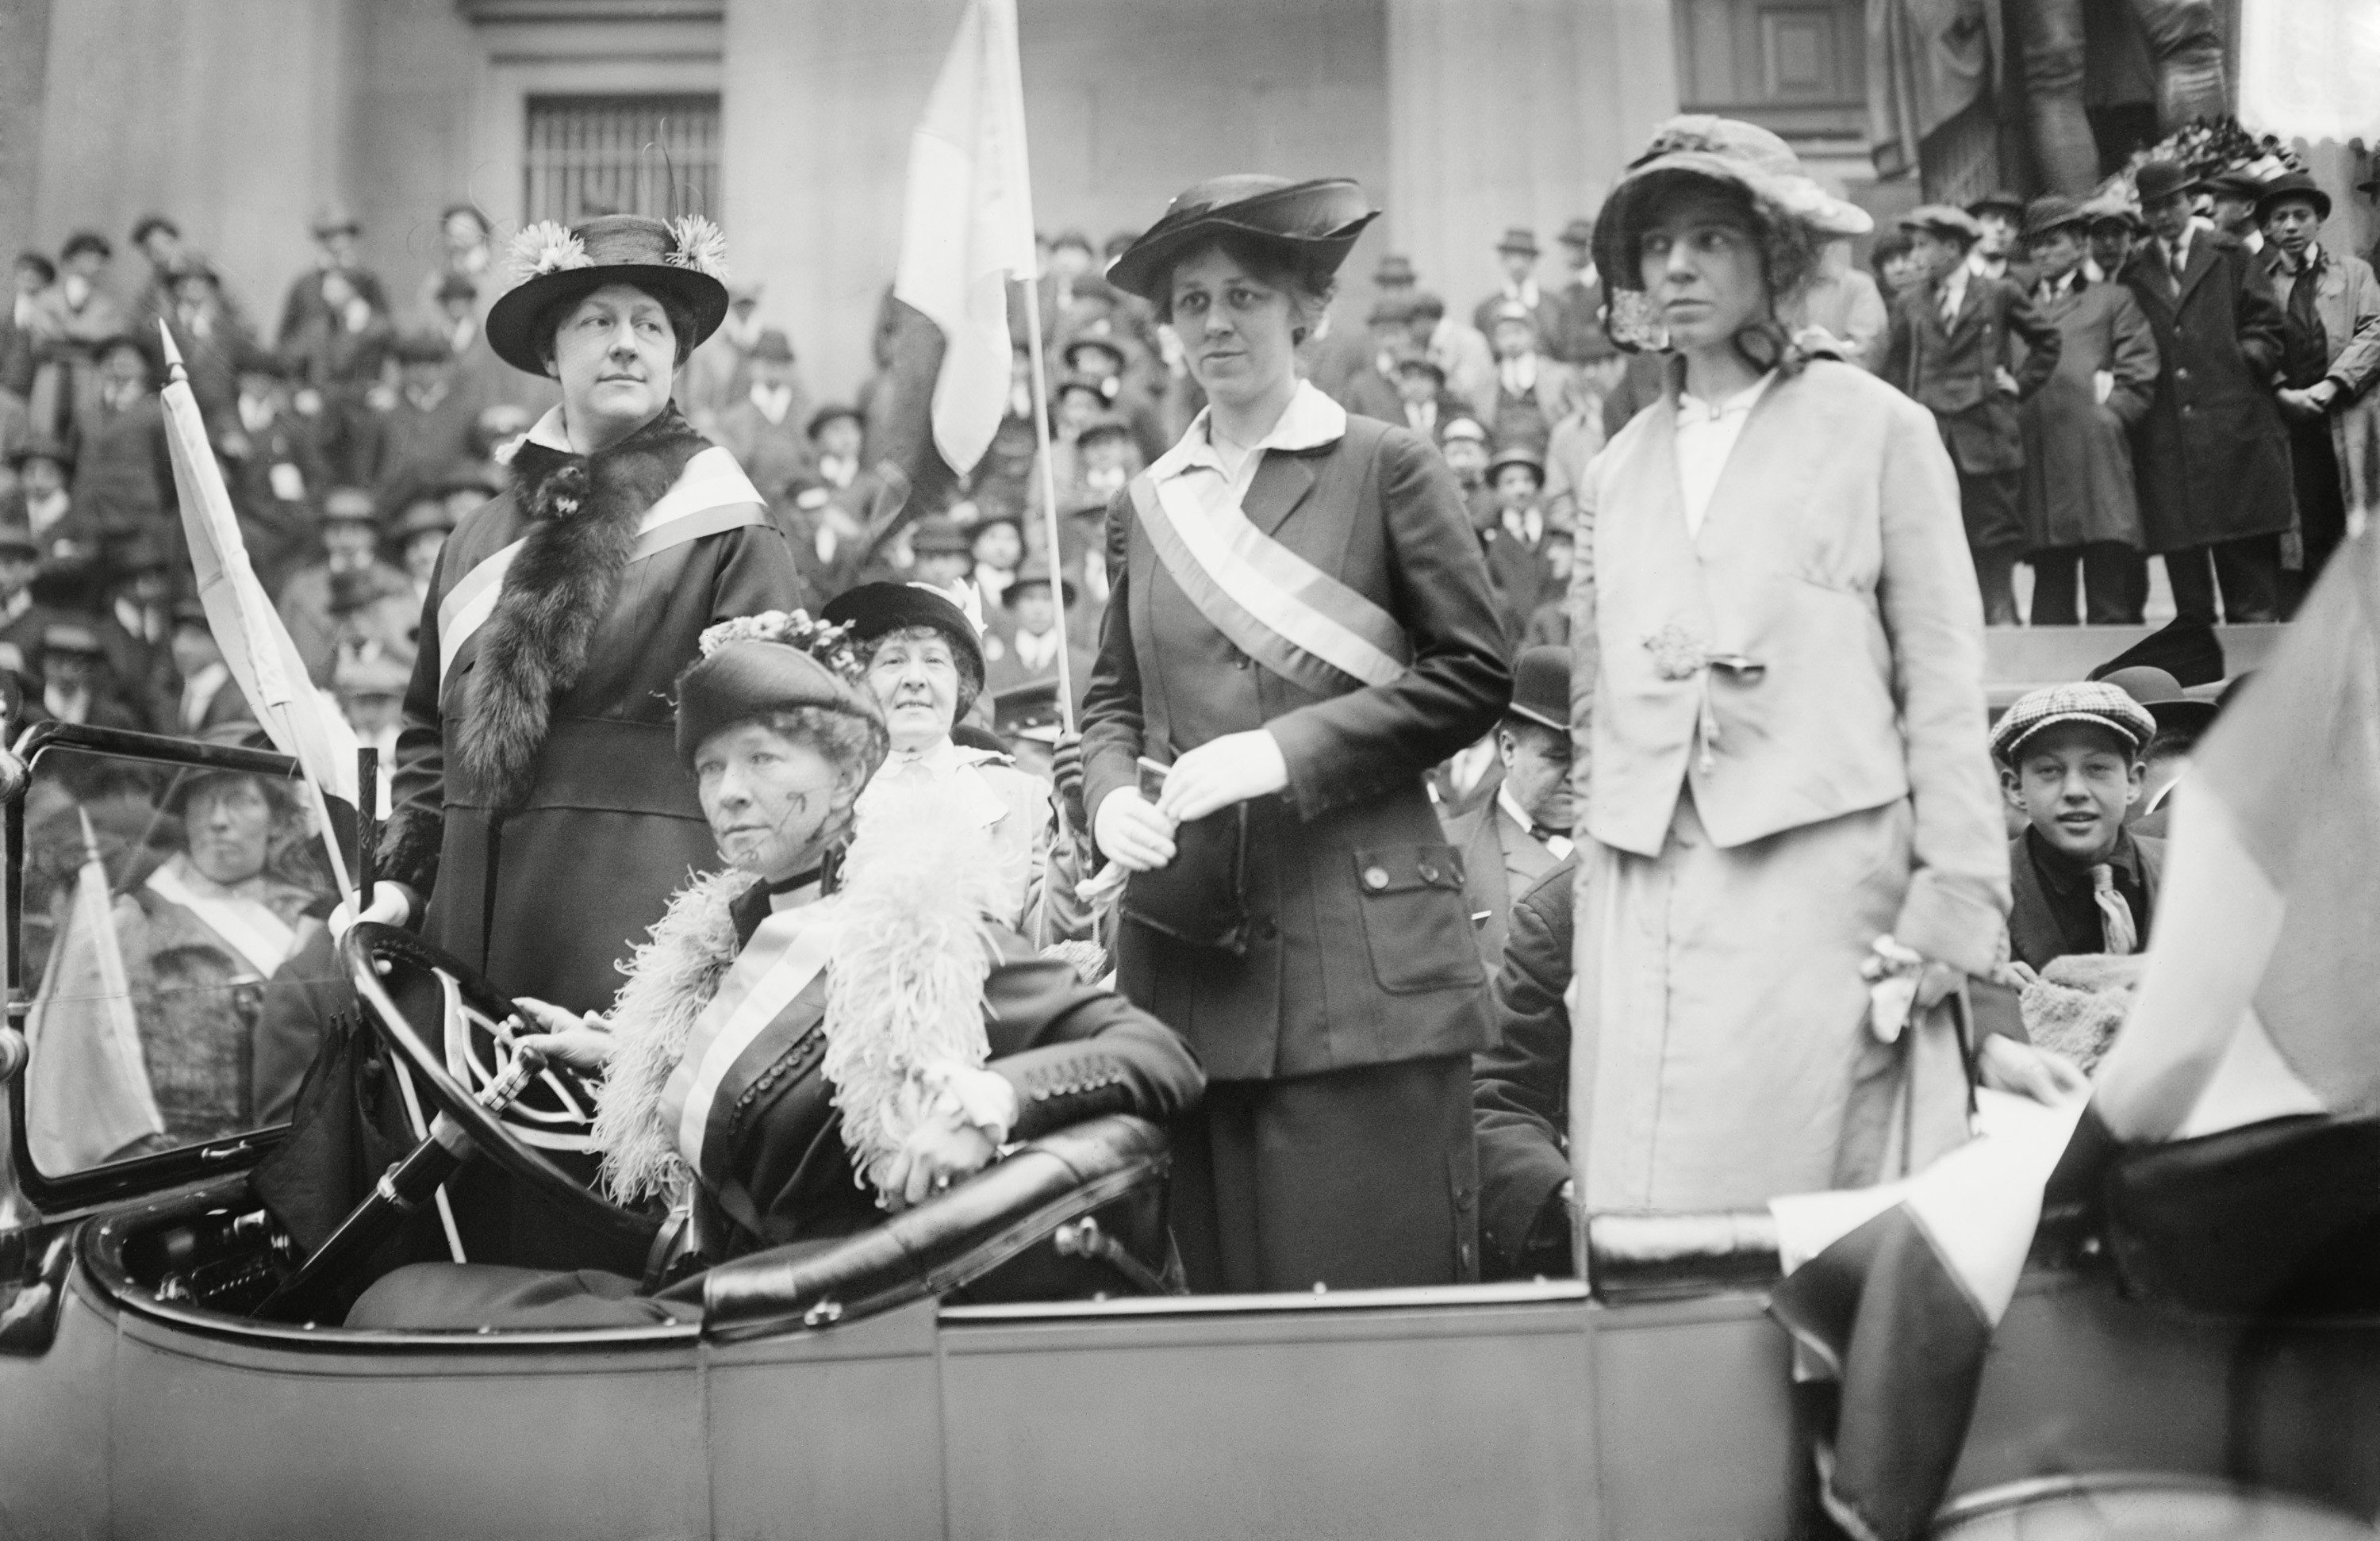 Mandatory Credit: Photo by Everett/Shutterstock (10278035a) Prominent womans suffrage advocates parade in an open car supporting the ratification of the 19th amendment granting women the right to vote in federal elections. Left to right: Mrs. W.L. Prendergast, Mrs. W.L. Colt, Doris Stevens, Alice Paul Historical Collection